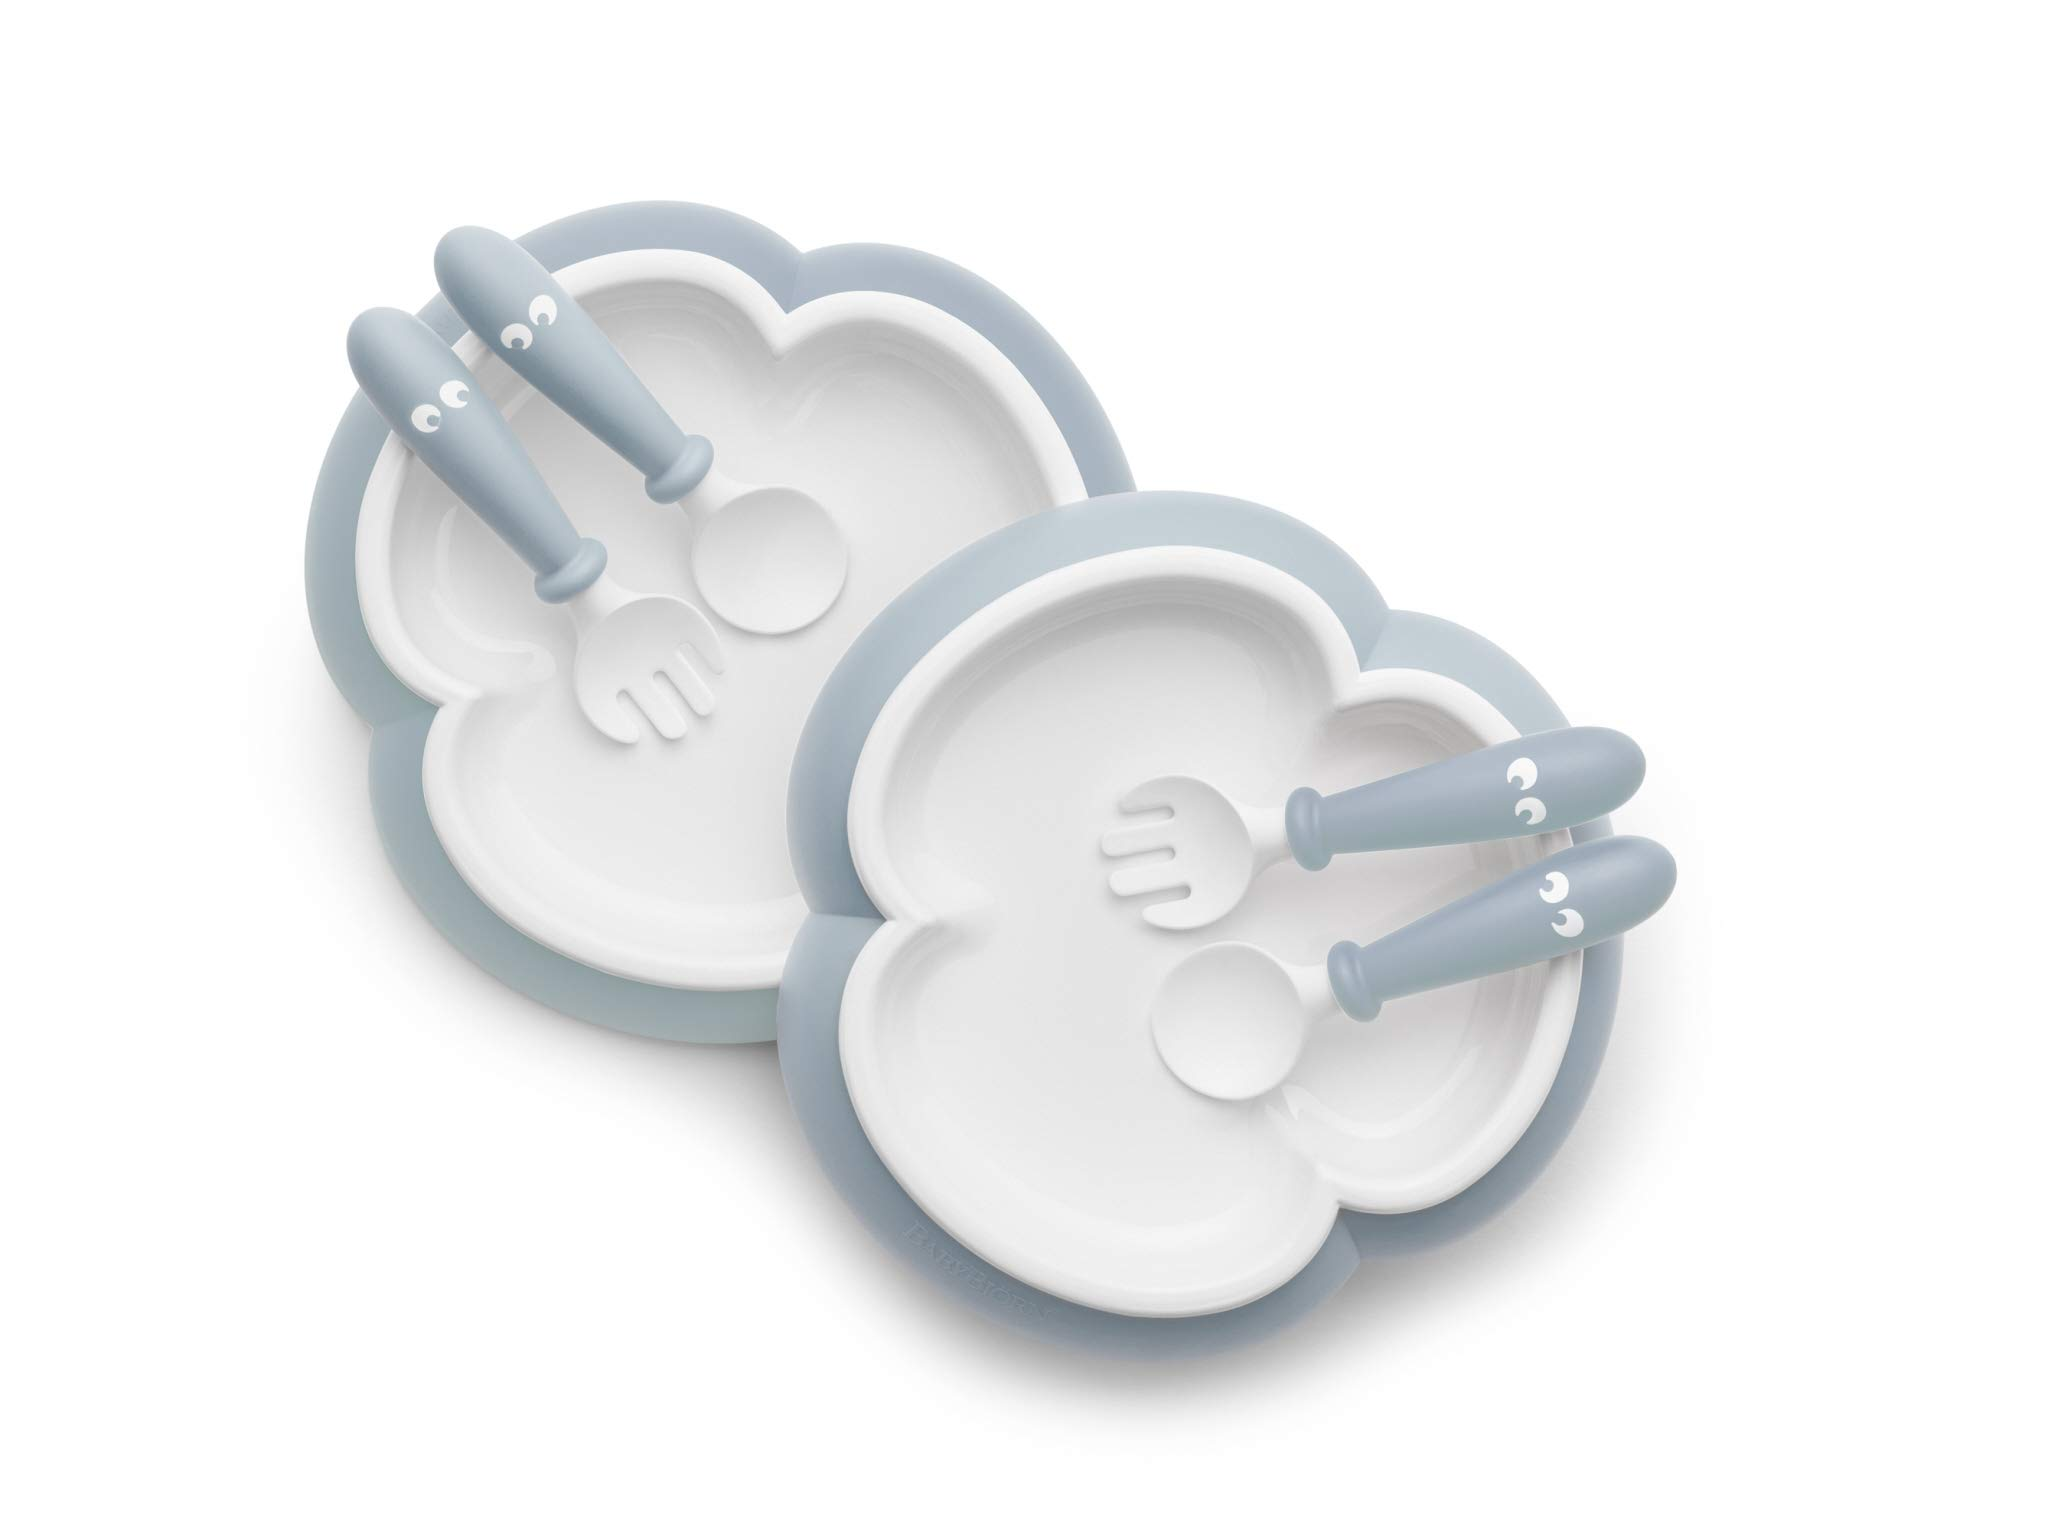 BABYBJORN Baby 2 Piece Plate, Spoon and Fork, Powder Blue by BabyBjörn (Image #1)